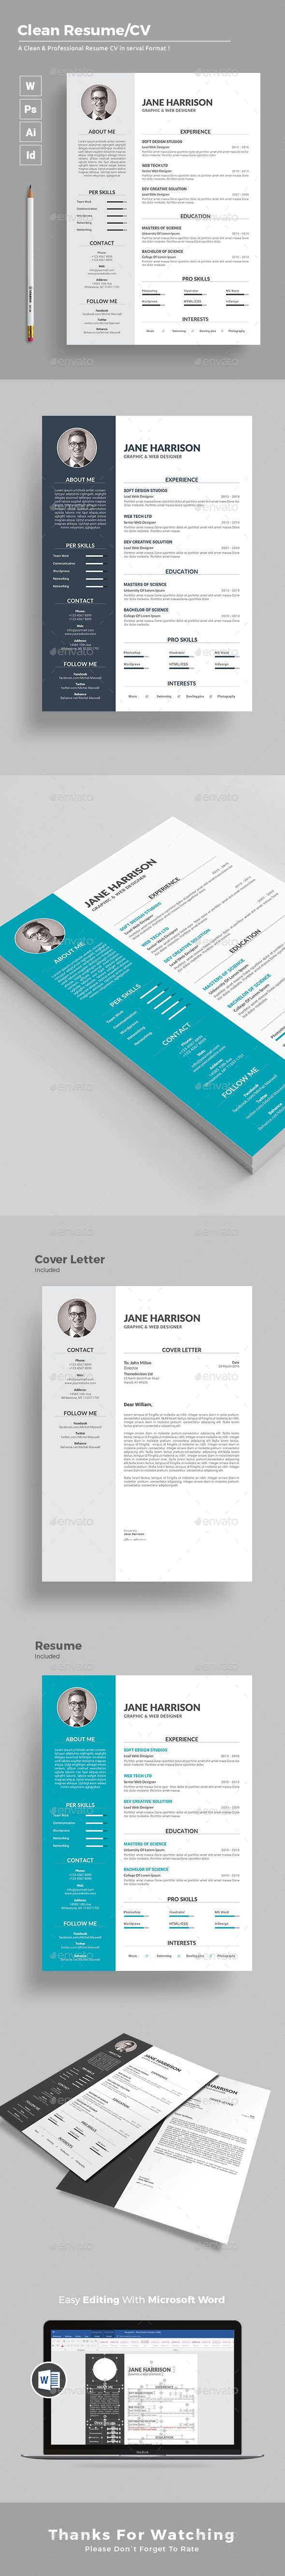 Best Leslie Mayor Resume Template Images On   Resume